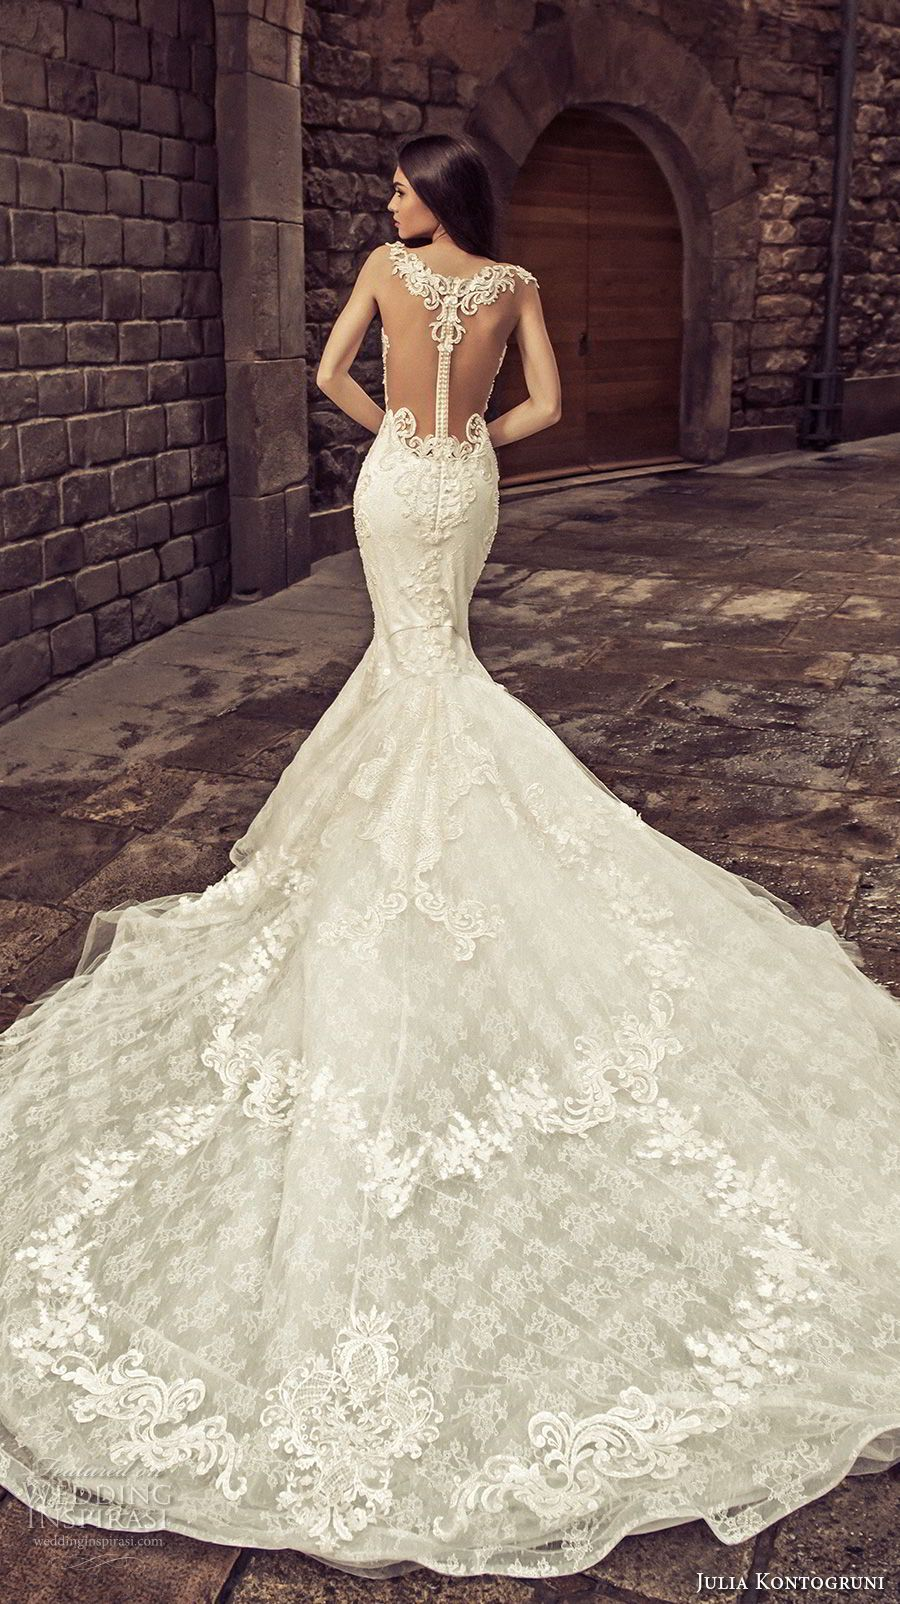 Lace mermaid wedding dress with cathedral train  Julia Kontogruni  Wedding Dresses  Mermaid wedding dresses